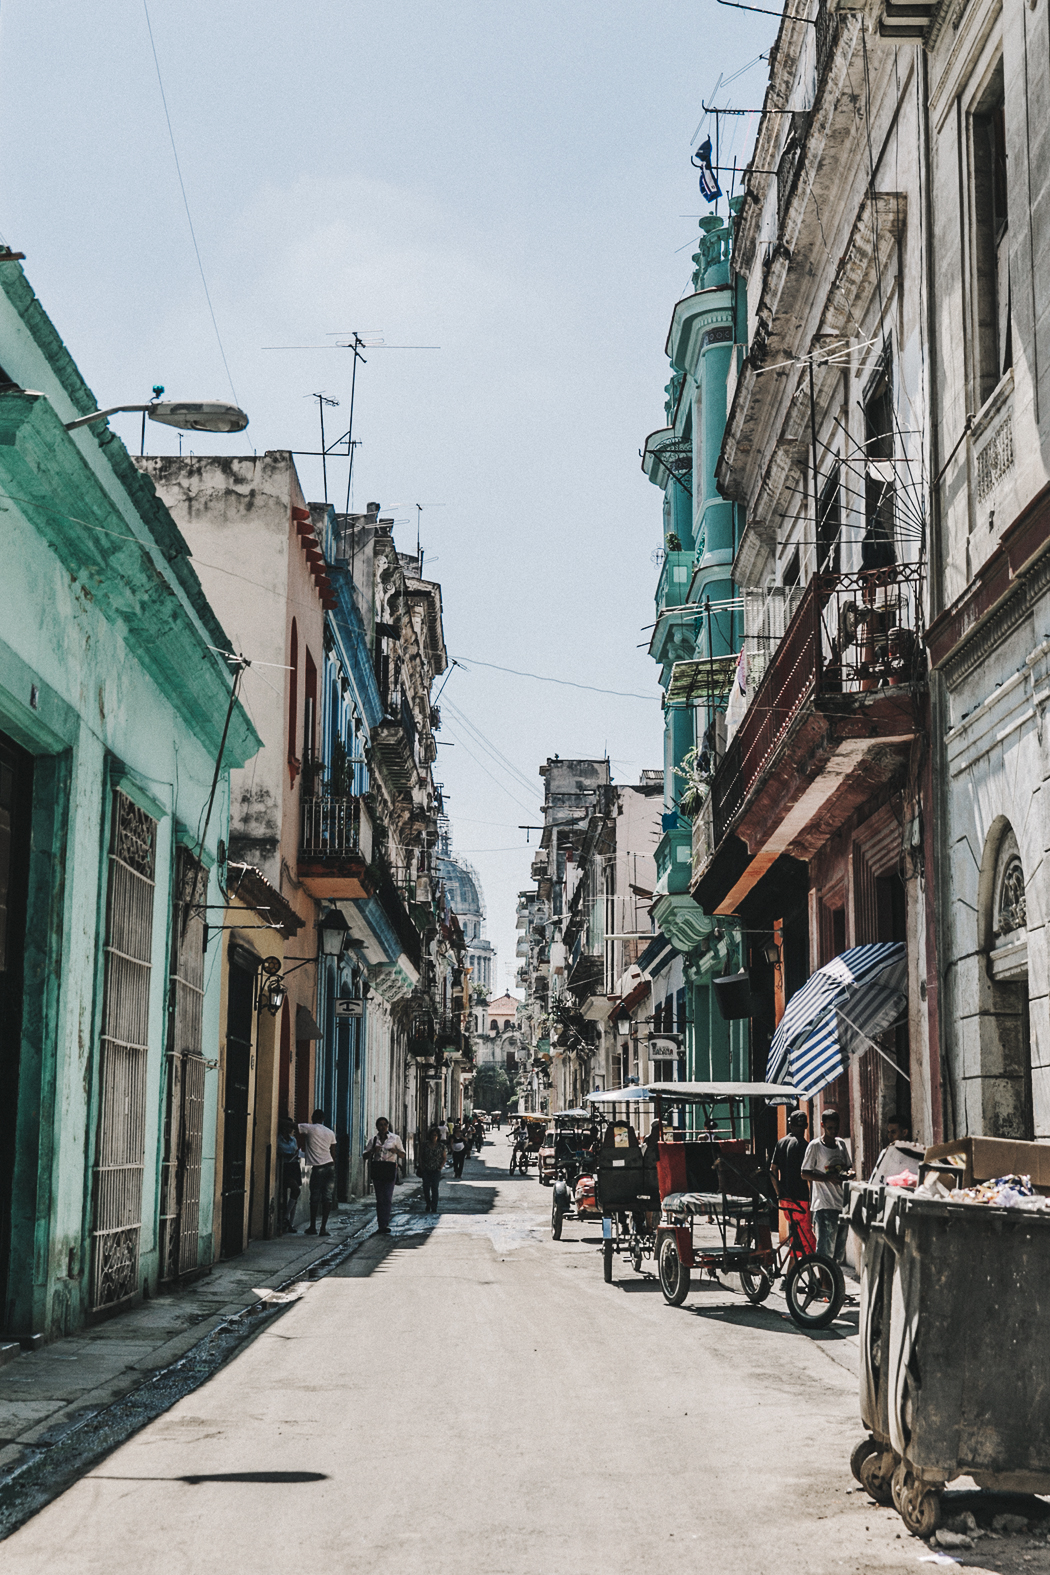 Cuba-Habana_Vieja-Suede_Skirt-Lace_UP_Body-Privacy_Please-Wedges-Outfit-Collage_Vintage-Travels-Street_Style-Backpack-20